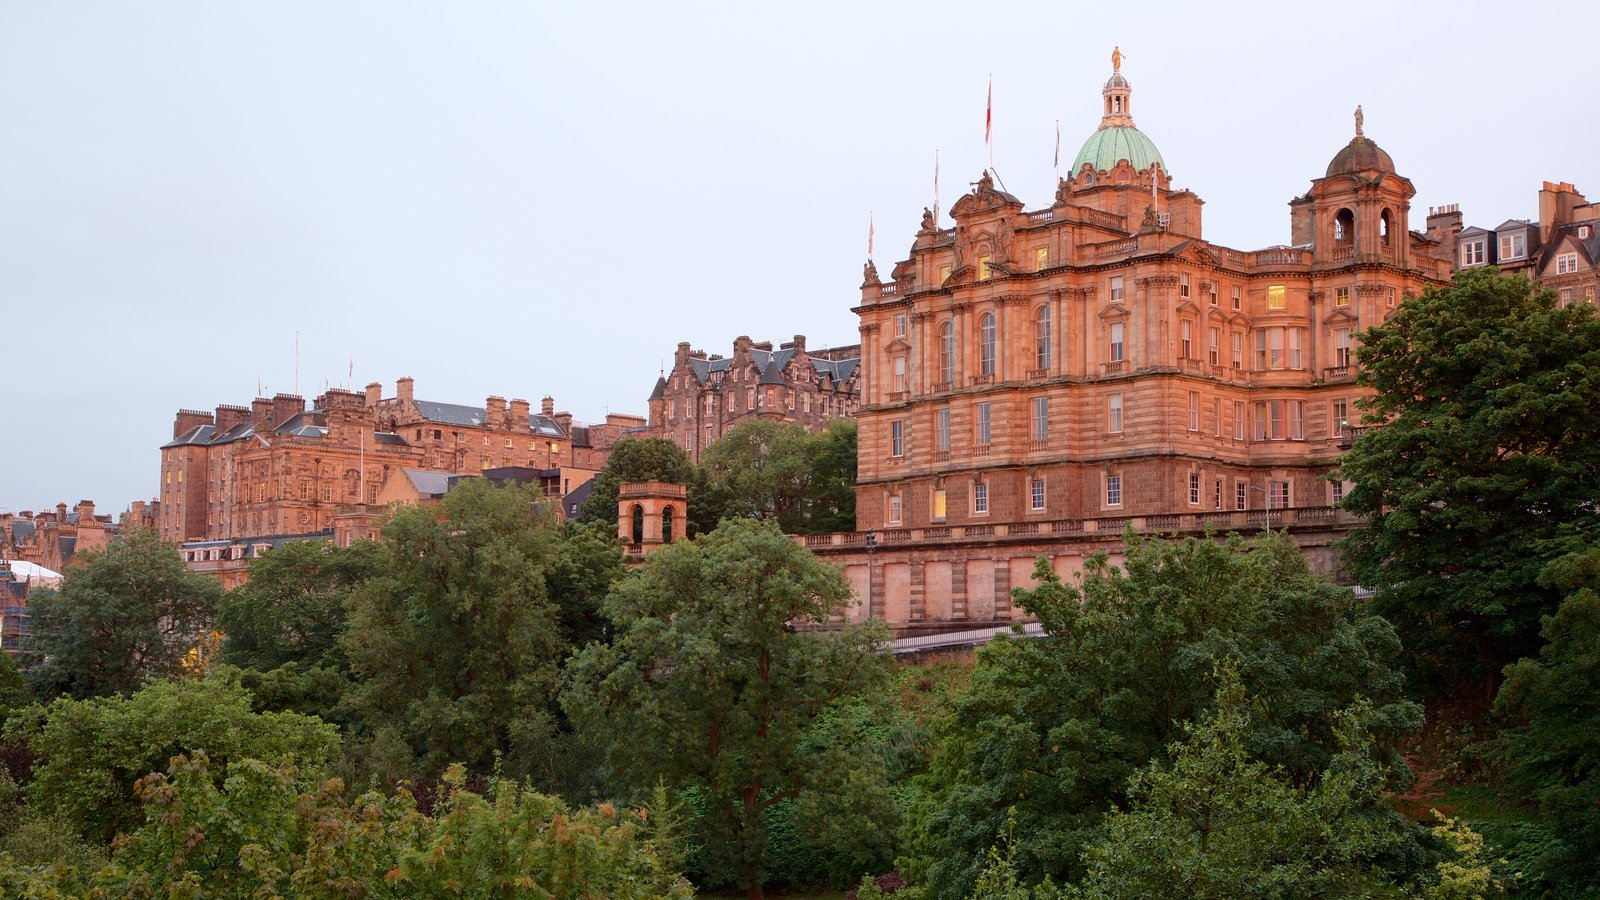 Princes Street Gardens showing a sunset and heritage elements